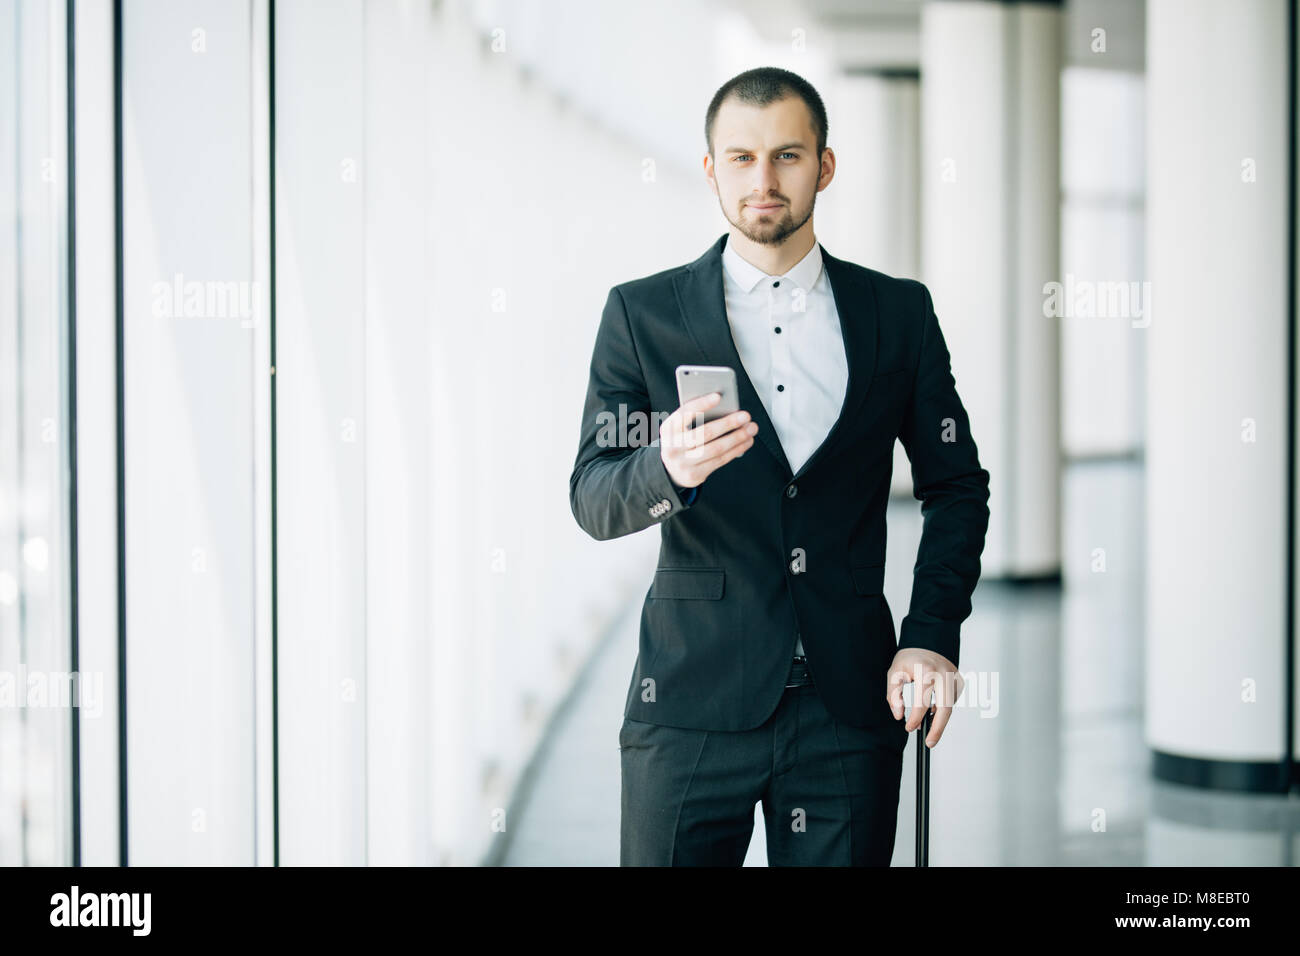 Happy young businessman walking and looking at mobile phone at airport. Handsome business executive texting on smartphone - Stock Image